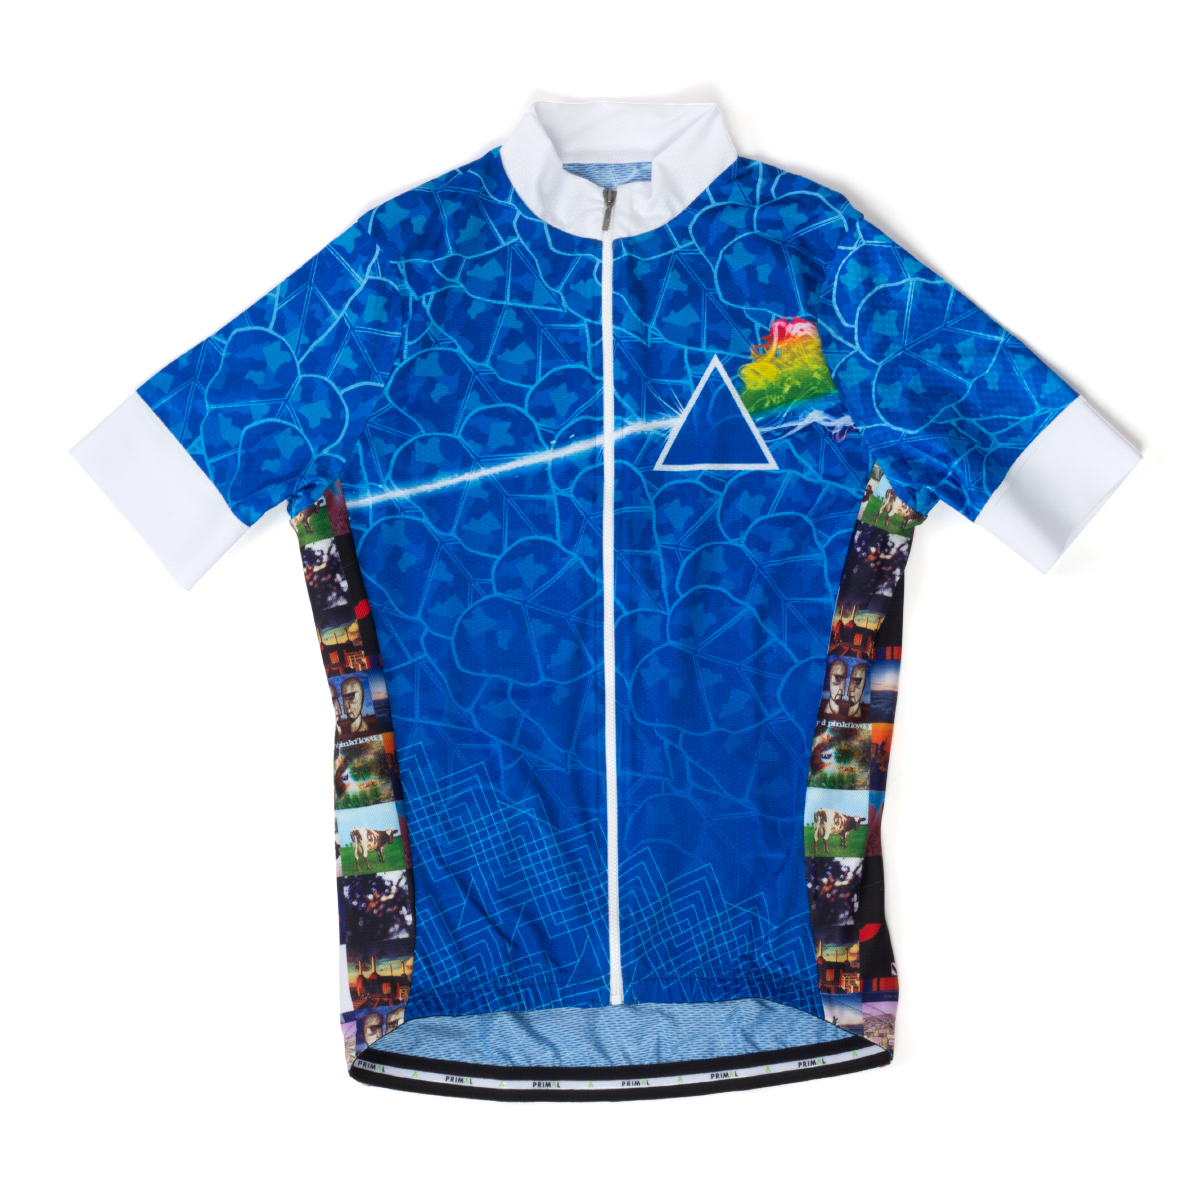 Primal Wear Album Collage Cycling Jersey